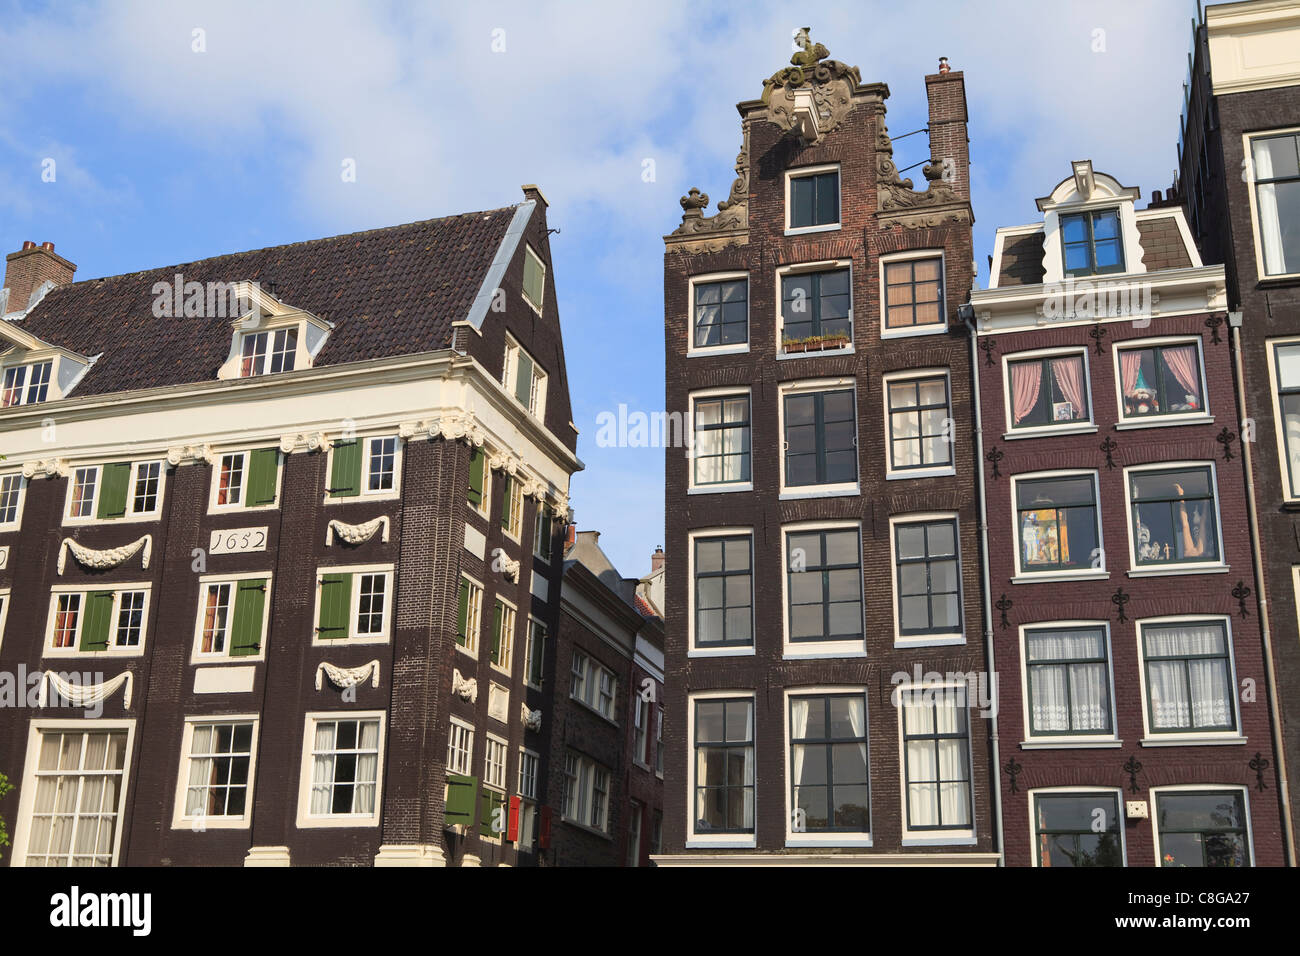 Online Dating in Amsterdam and the Netherlands